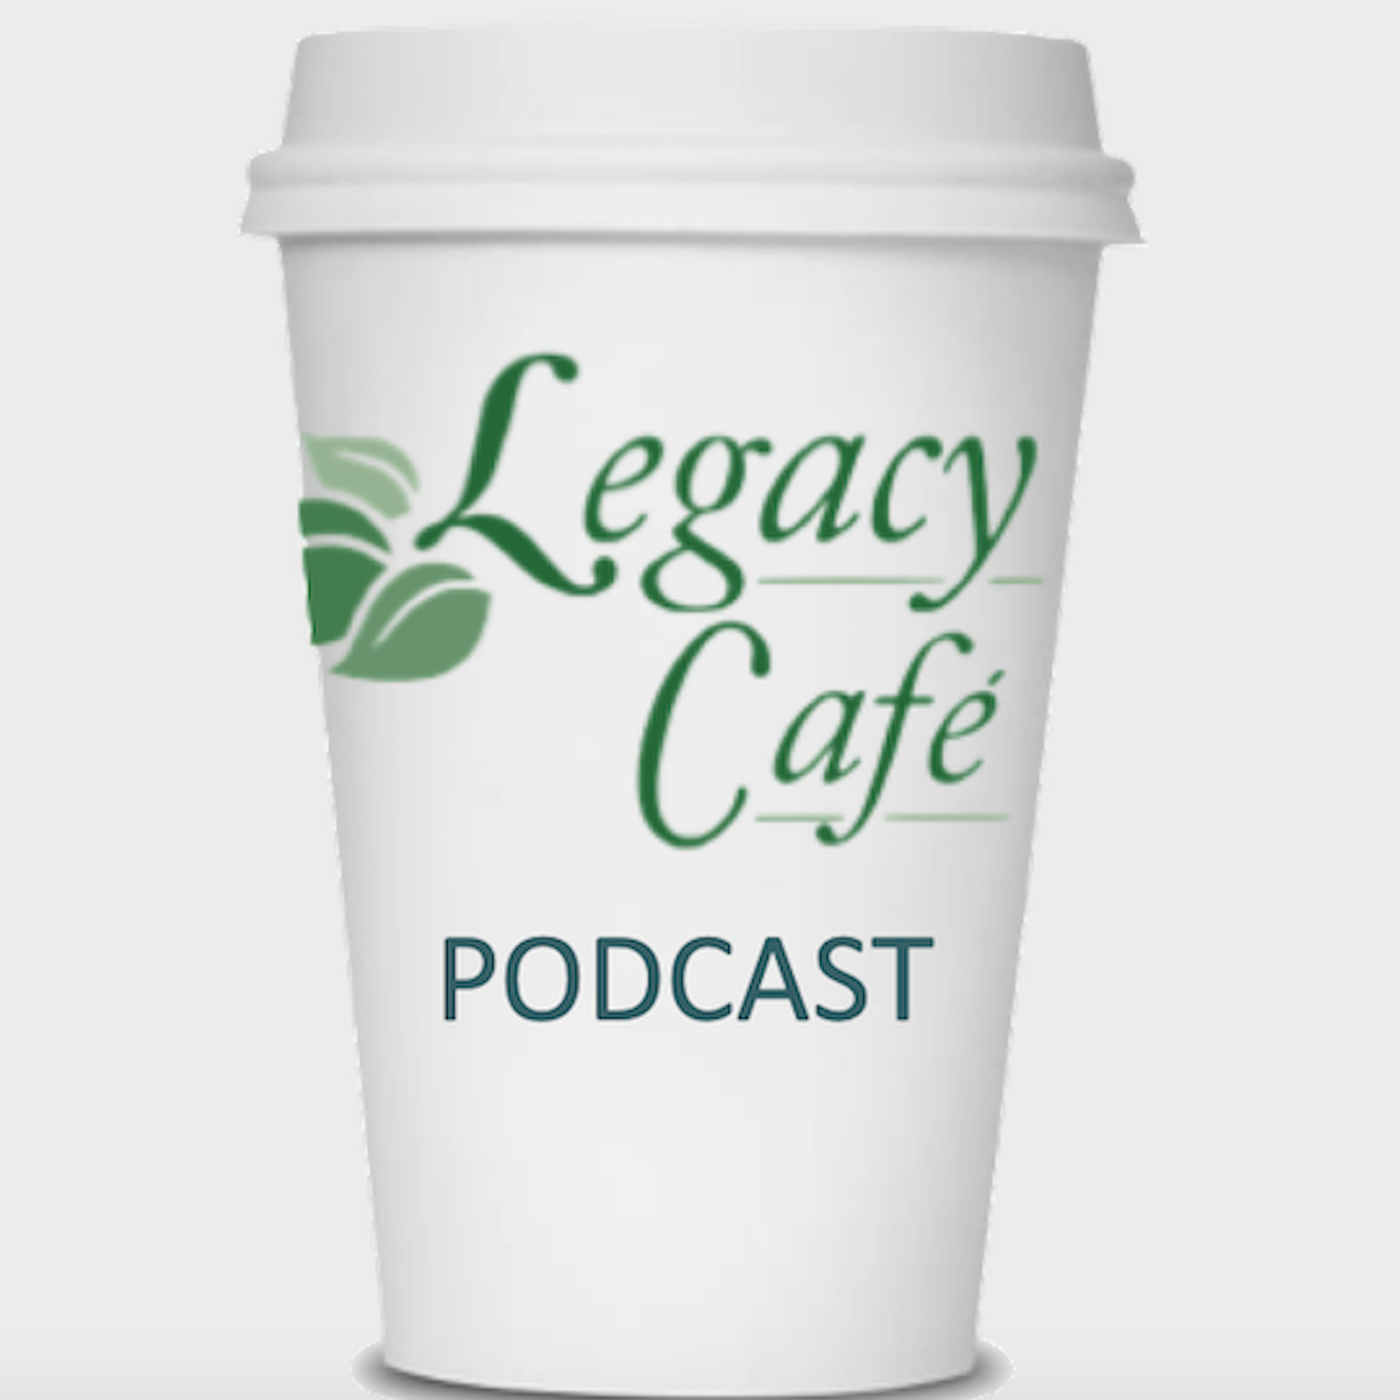 Legacy Cafe Podcast